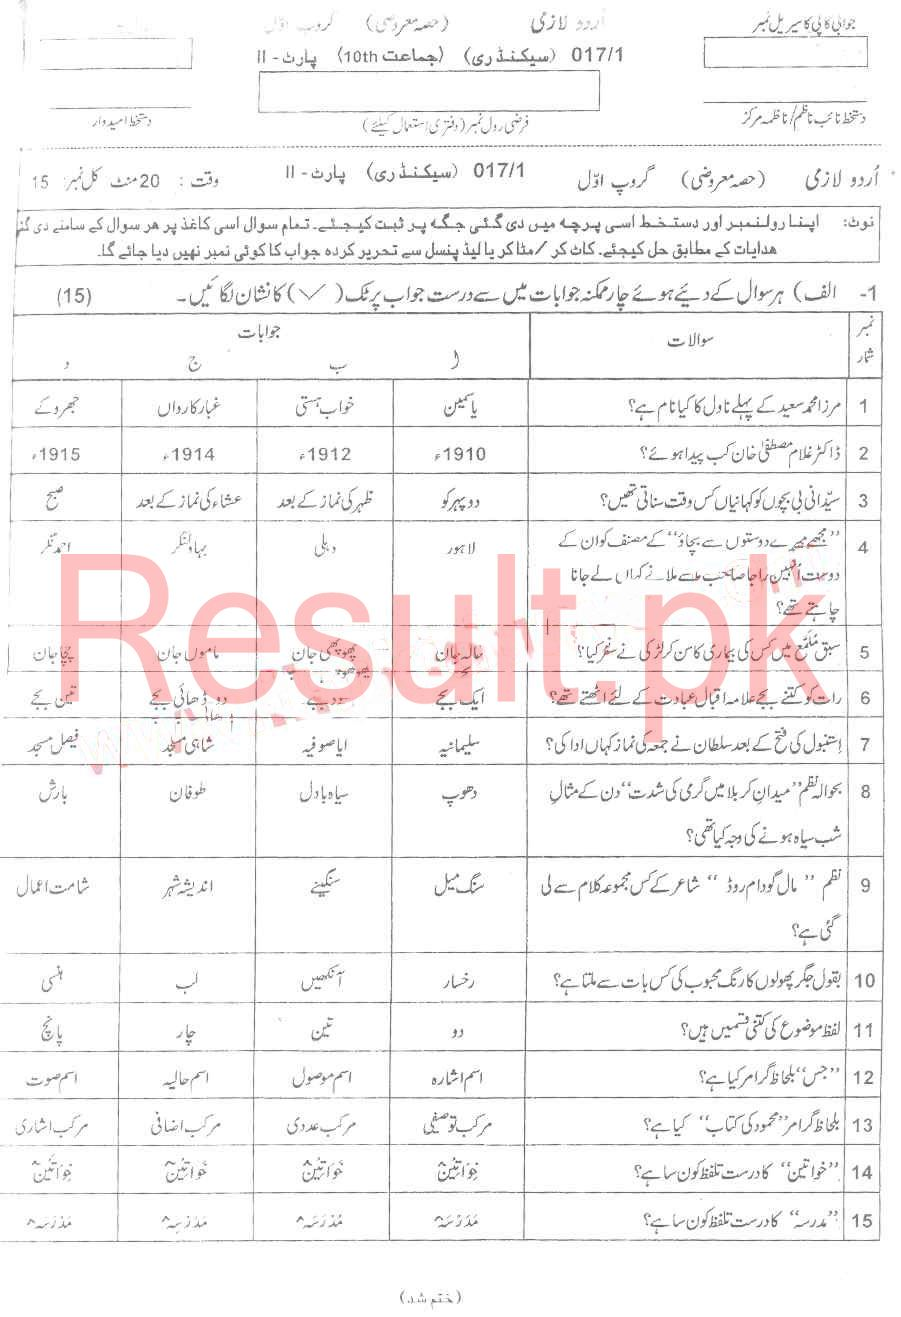 BISE AJK Board Mirpur Past Papers 2019 Matric, SSC Part 1 & 2, 9th